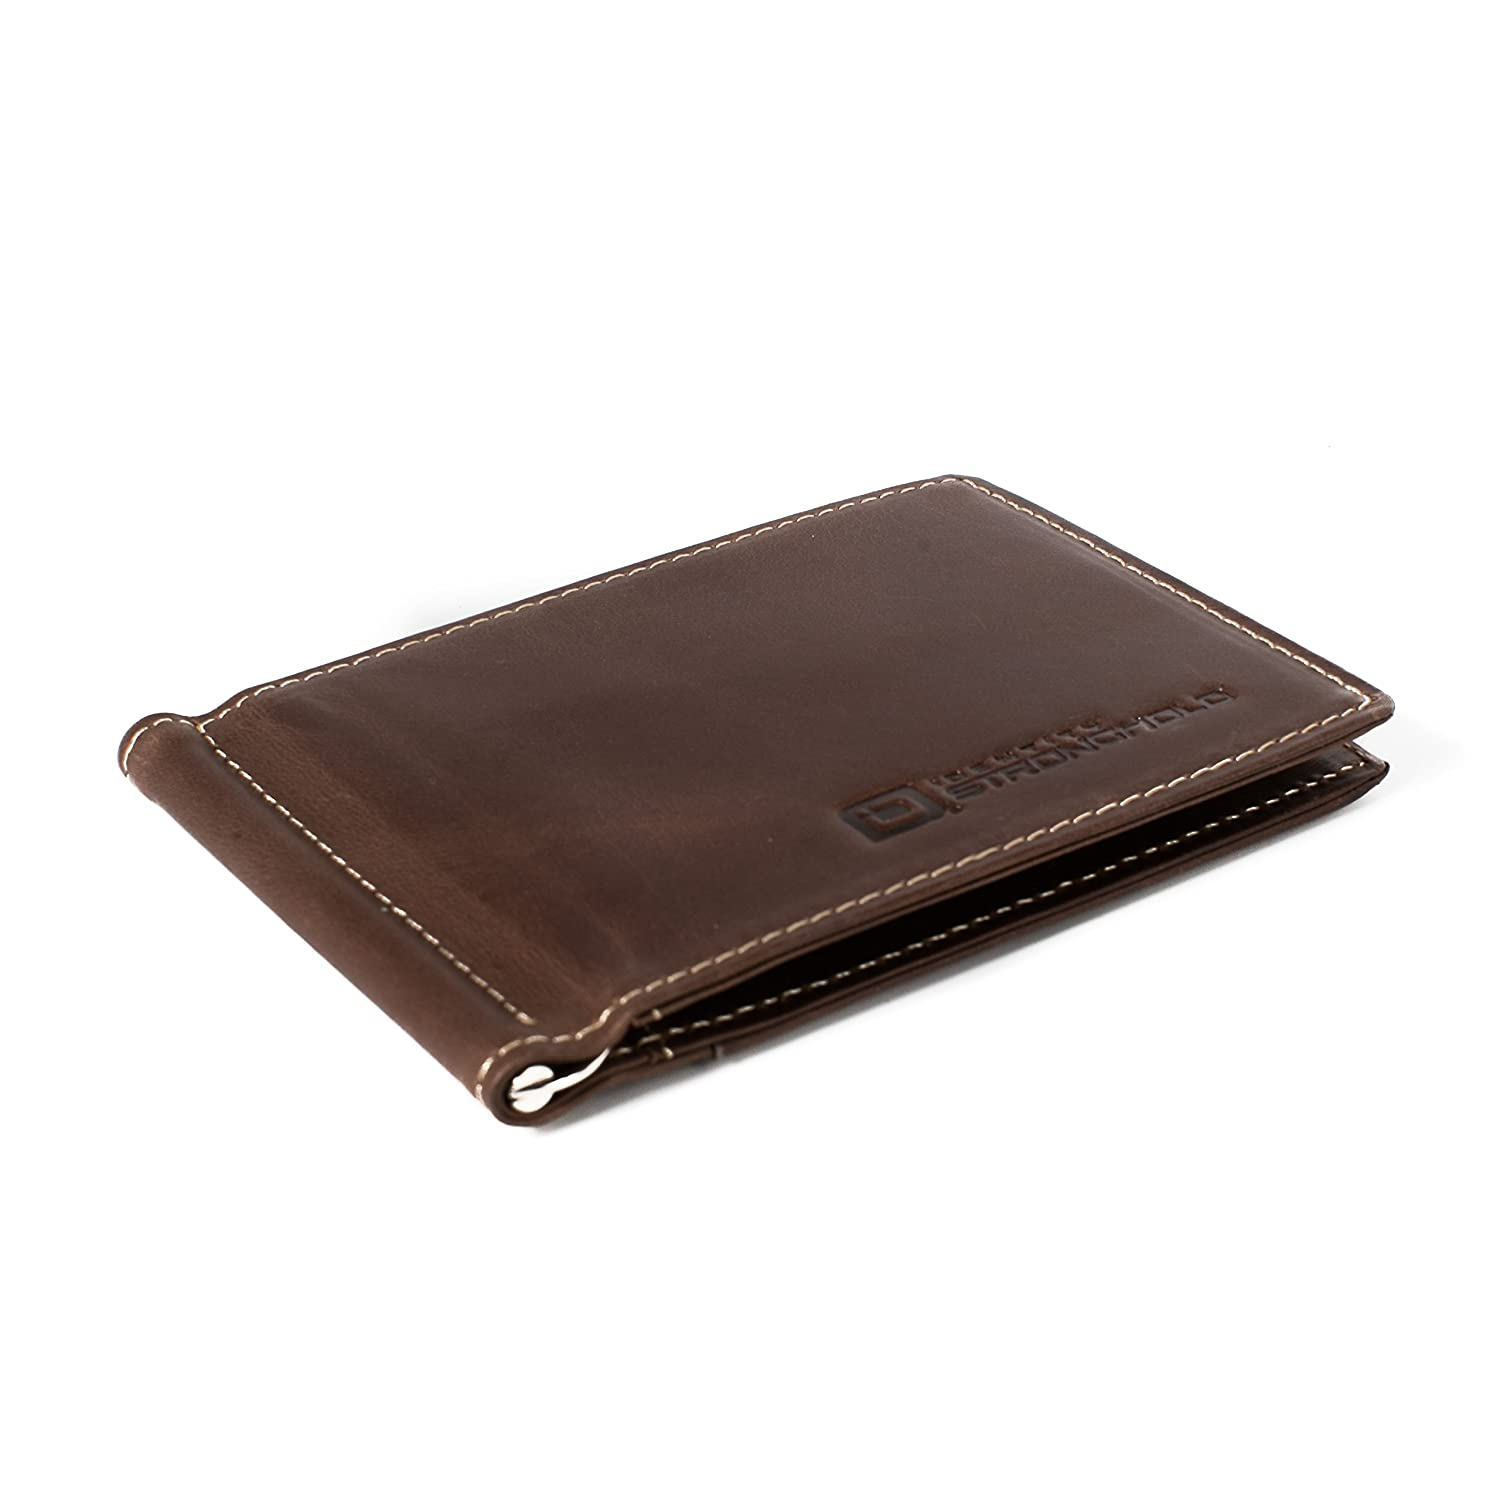 RFID Money Clip with ID - RFID Wallets with Excellent Quality Leather - Men's Protective Wallets - Minimalist Wallet (Brown) ID Stronghold 7022